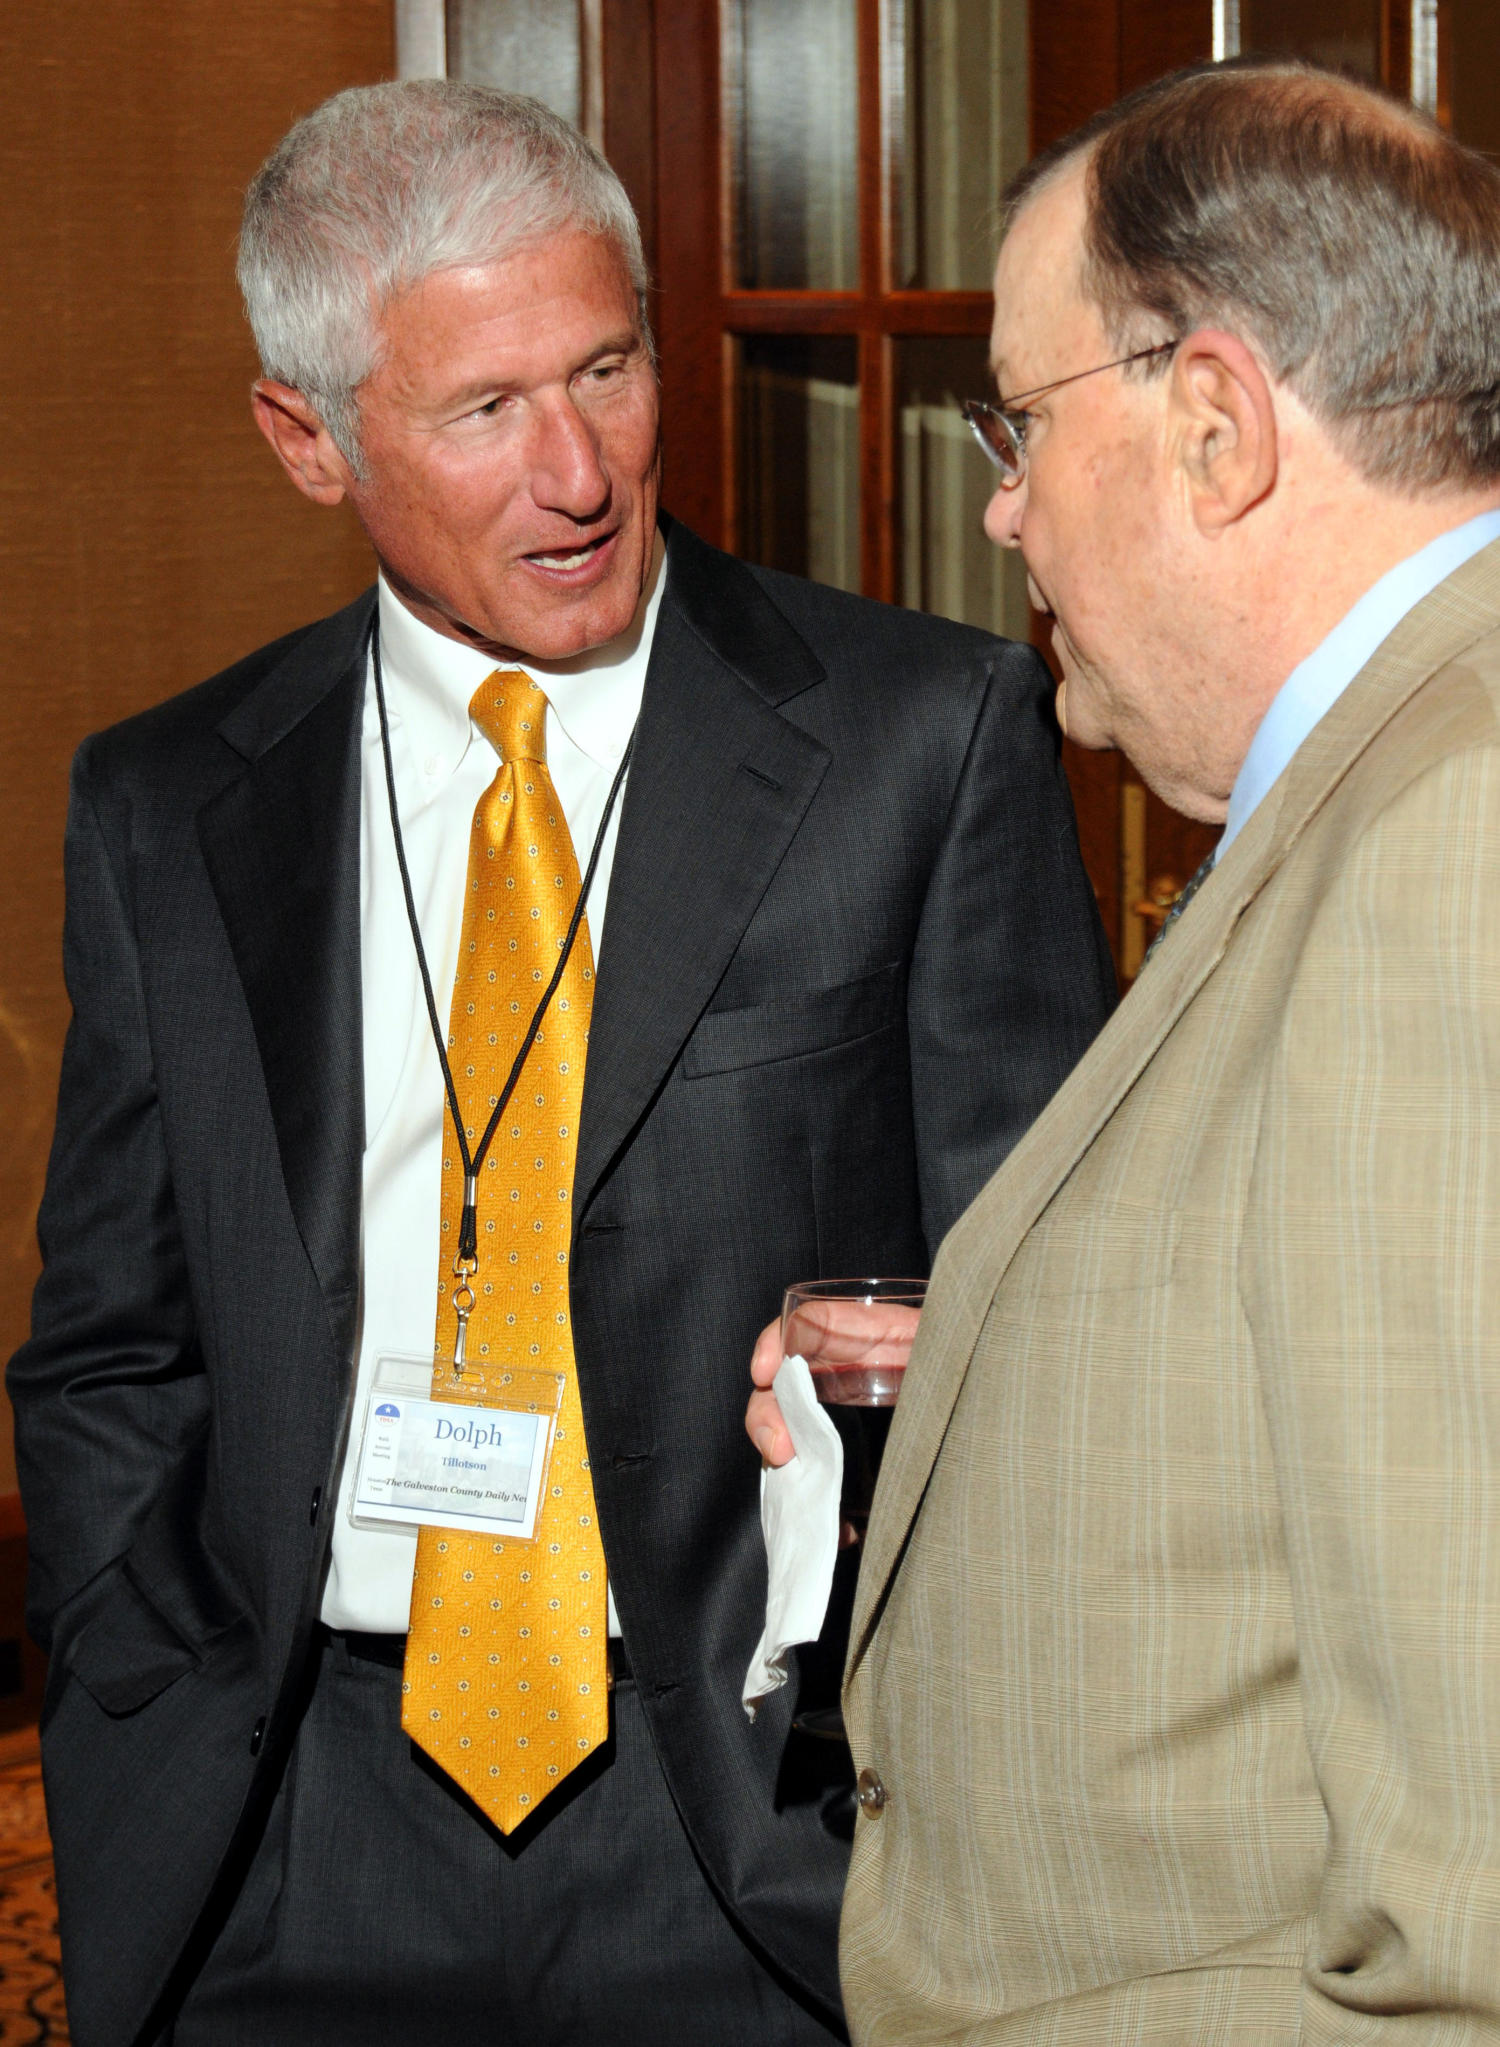 [Photograph of Dolph Tillotson], Photograph of Dolph Tillotson seen standing with another guest, drinking refreshments during a reception at the 2010 Texas Daily Newspaper Association annual meeting held in Houston, Texas.,